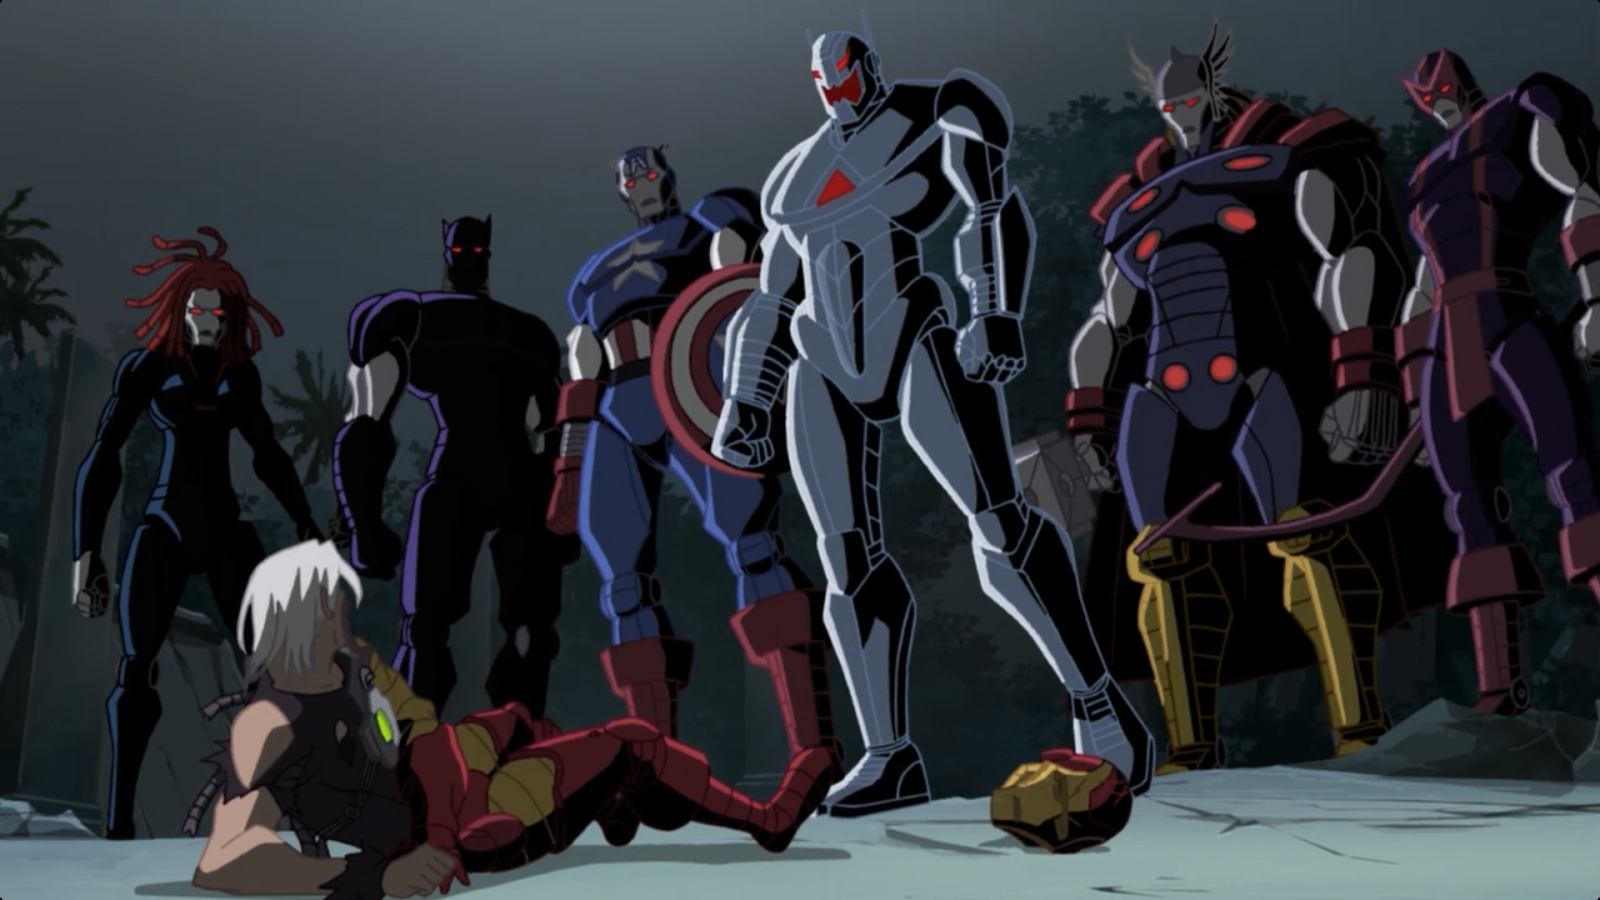 Things I Have Watched Next Avengers Heroes Of Tomorrow 2008 Direct To Video Animated Movie